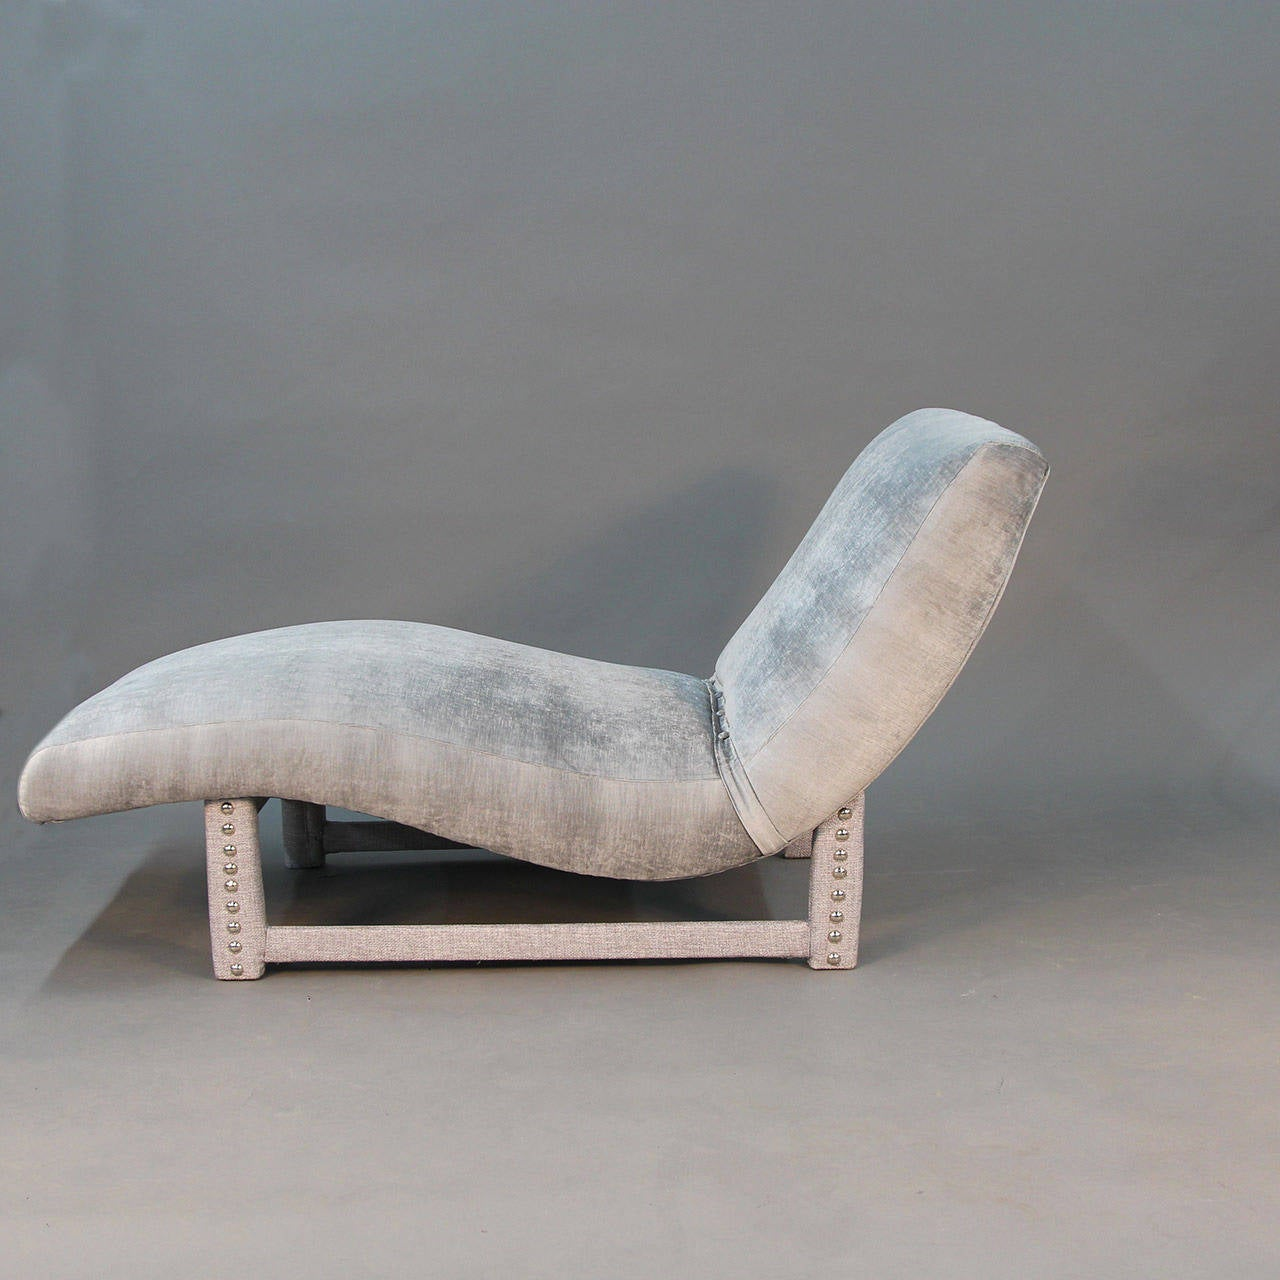 Post modern wave chaise longue in the millennium style for for Chaise 64 cm